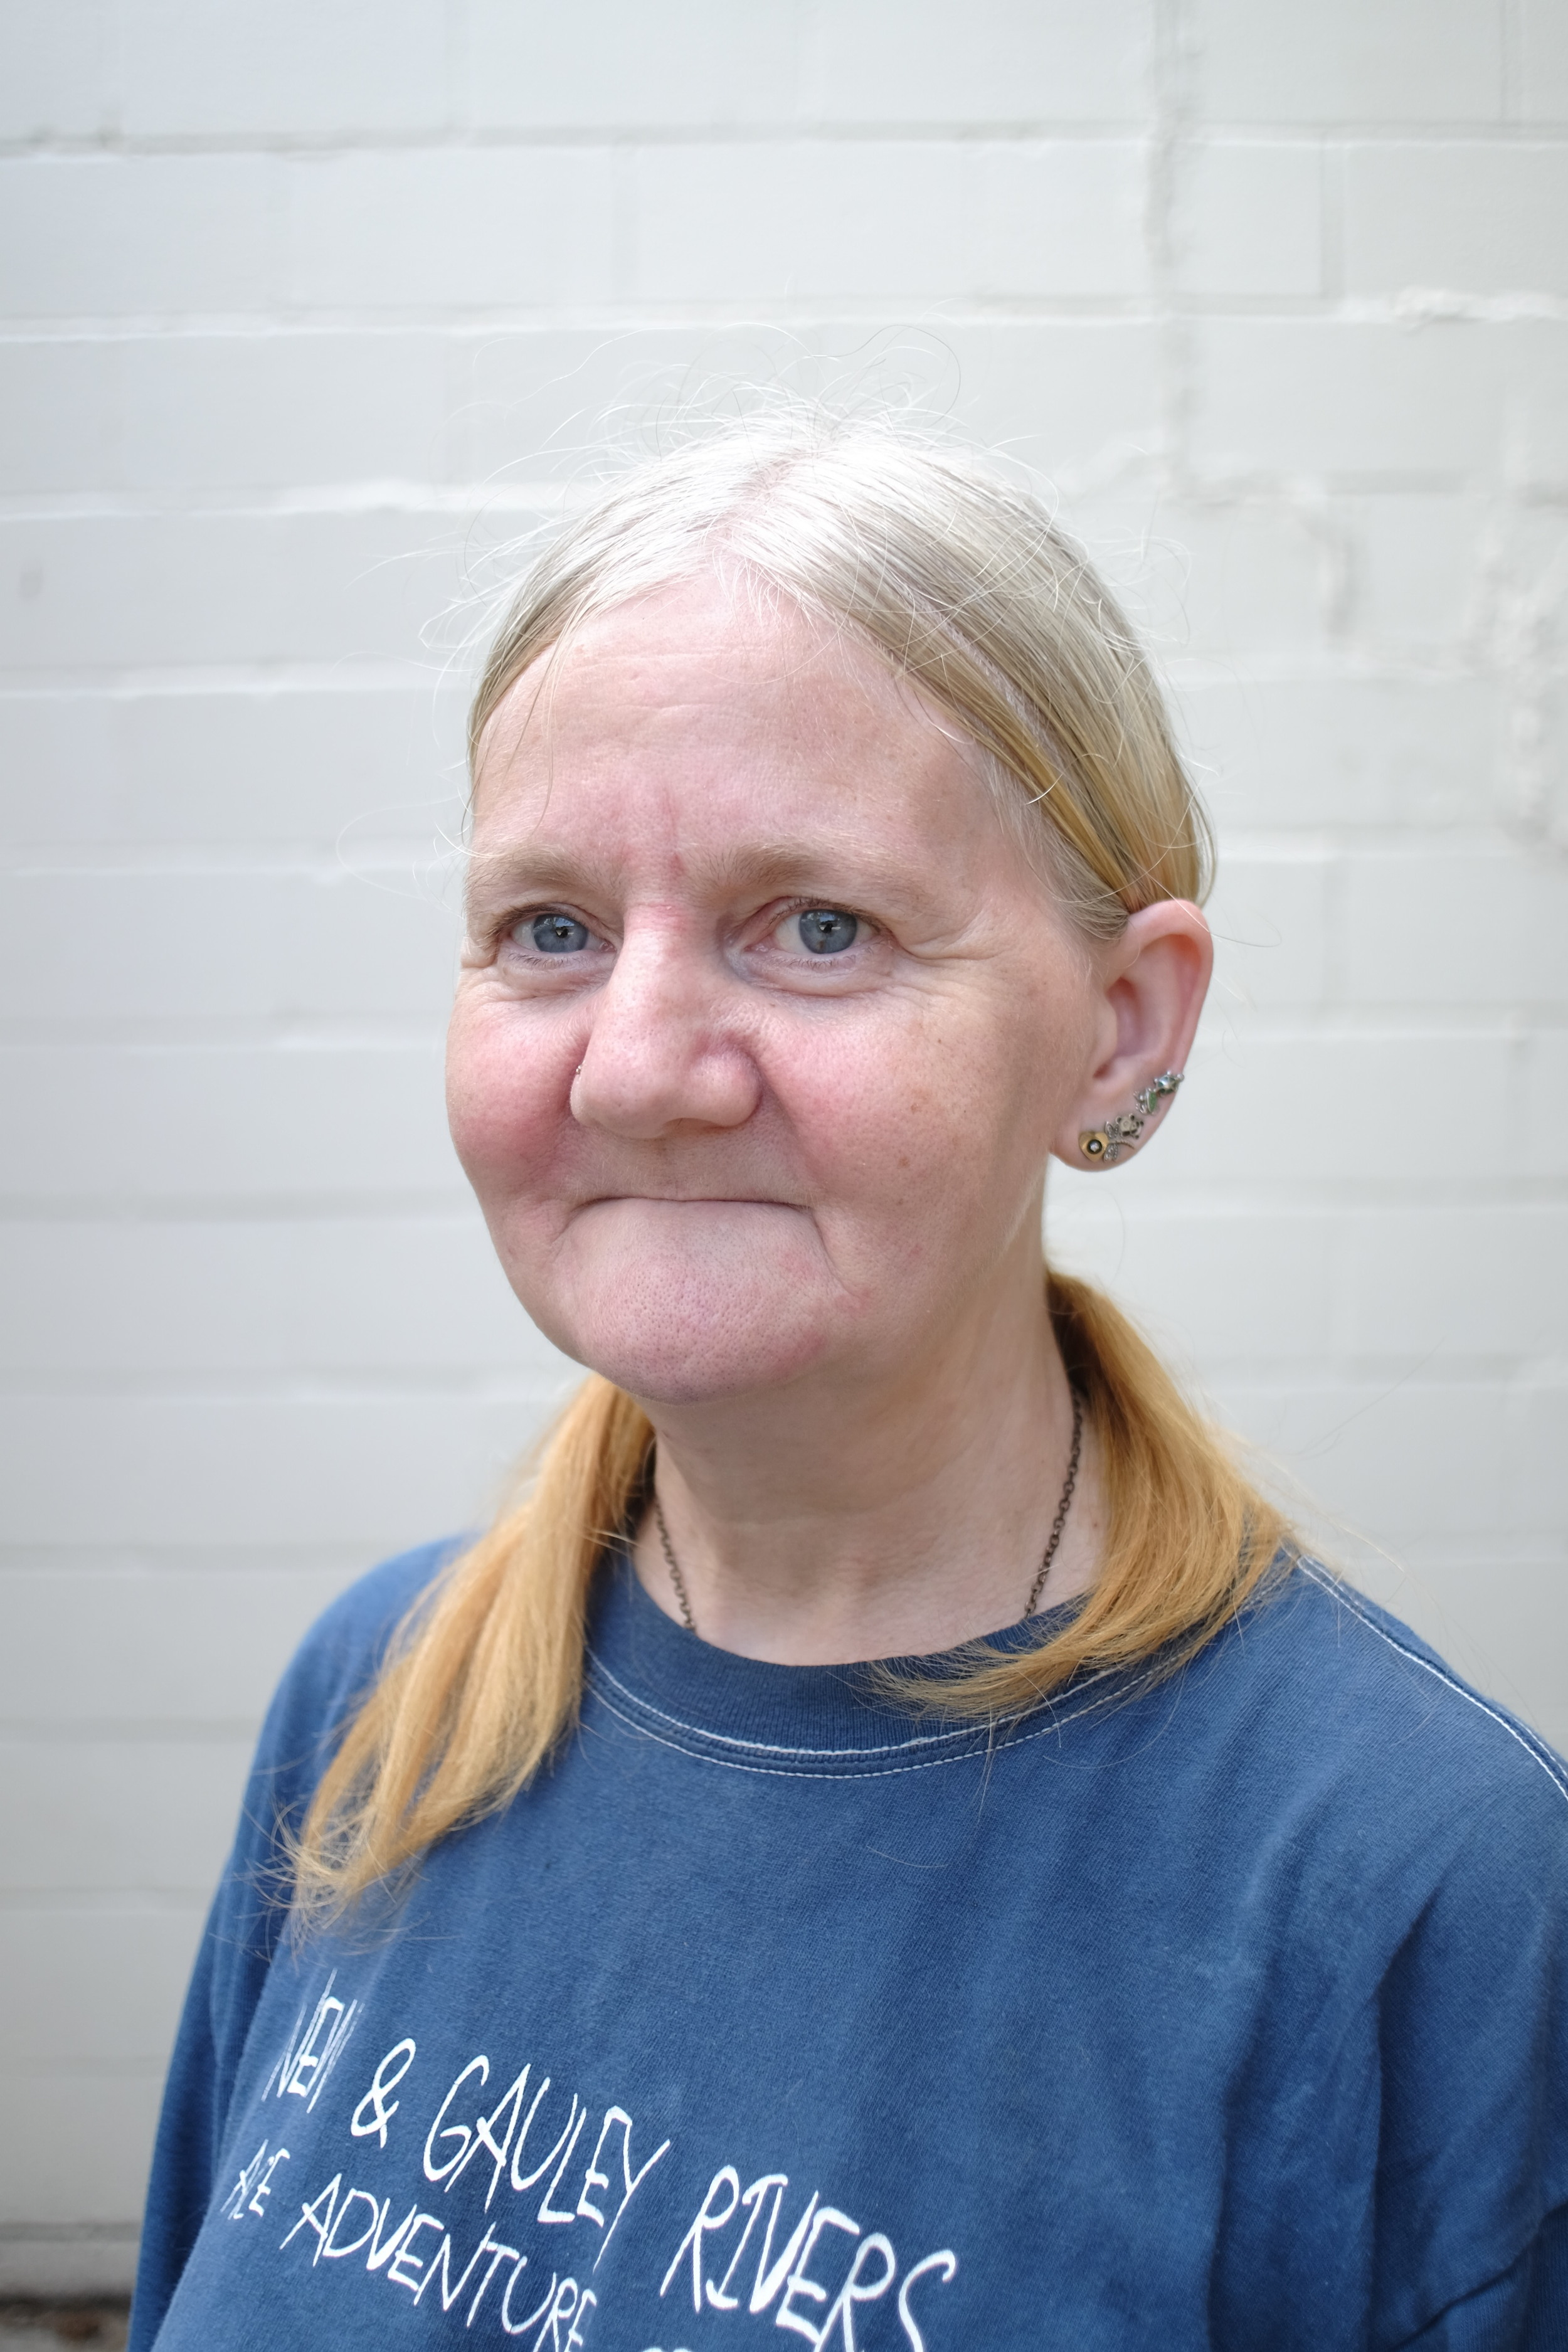 """Sally James has lived in Muskegon for  25 years and has volunteered at Sacred Suds for 12. """"I  came to do my laundry and eventually I volunteered, because I wanted to give the community back what they gave to me.""""  What's kept sally there for 12 years?  """"Friends. I like the people here."""""""